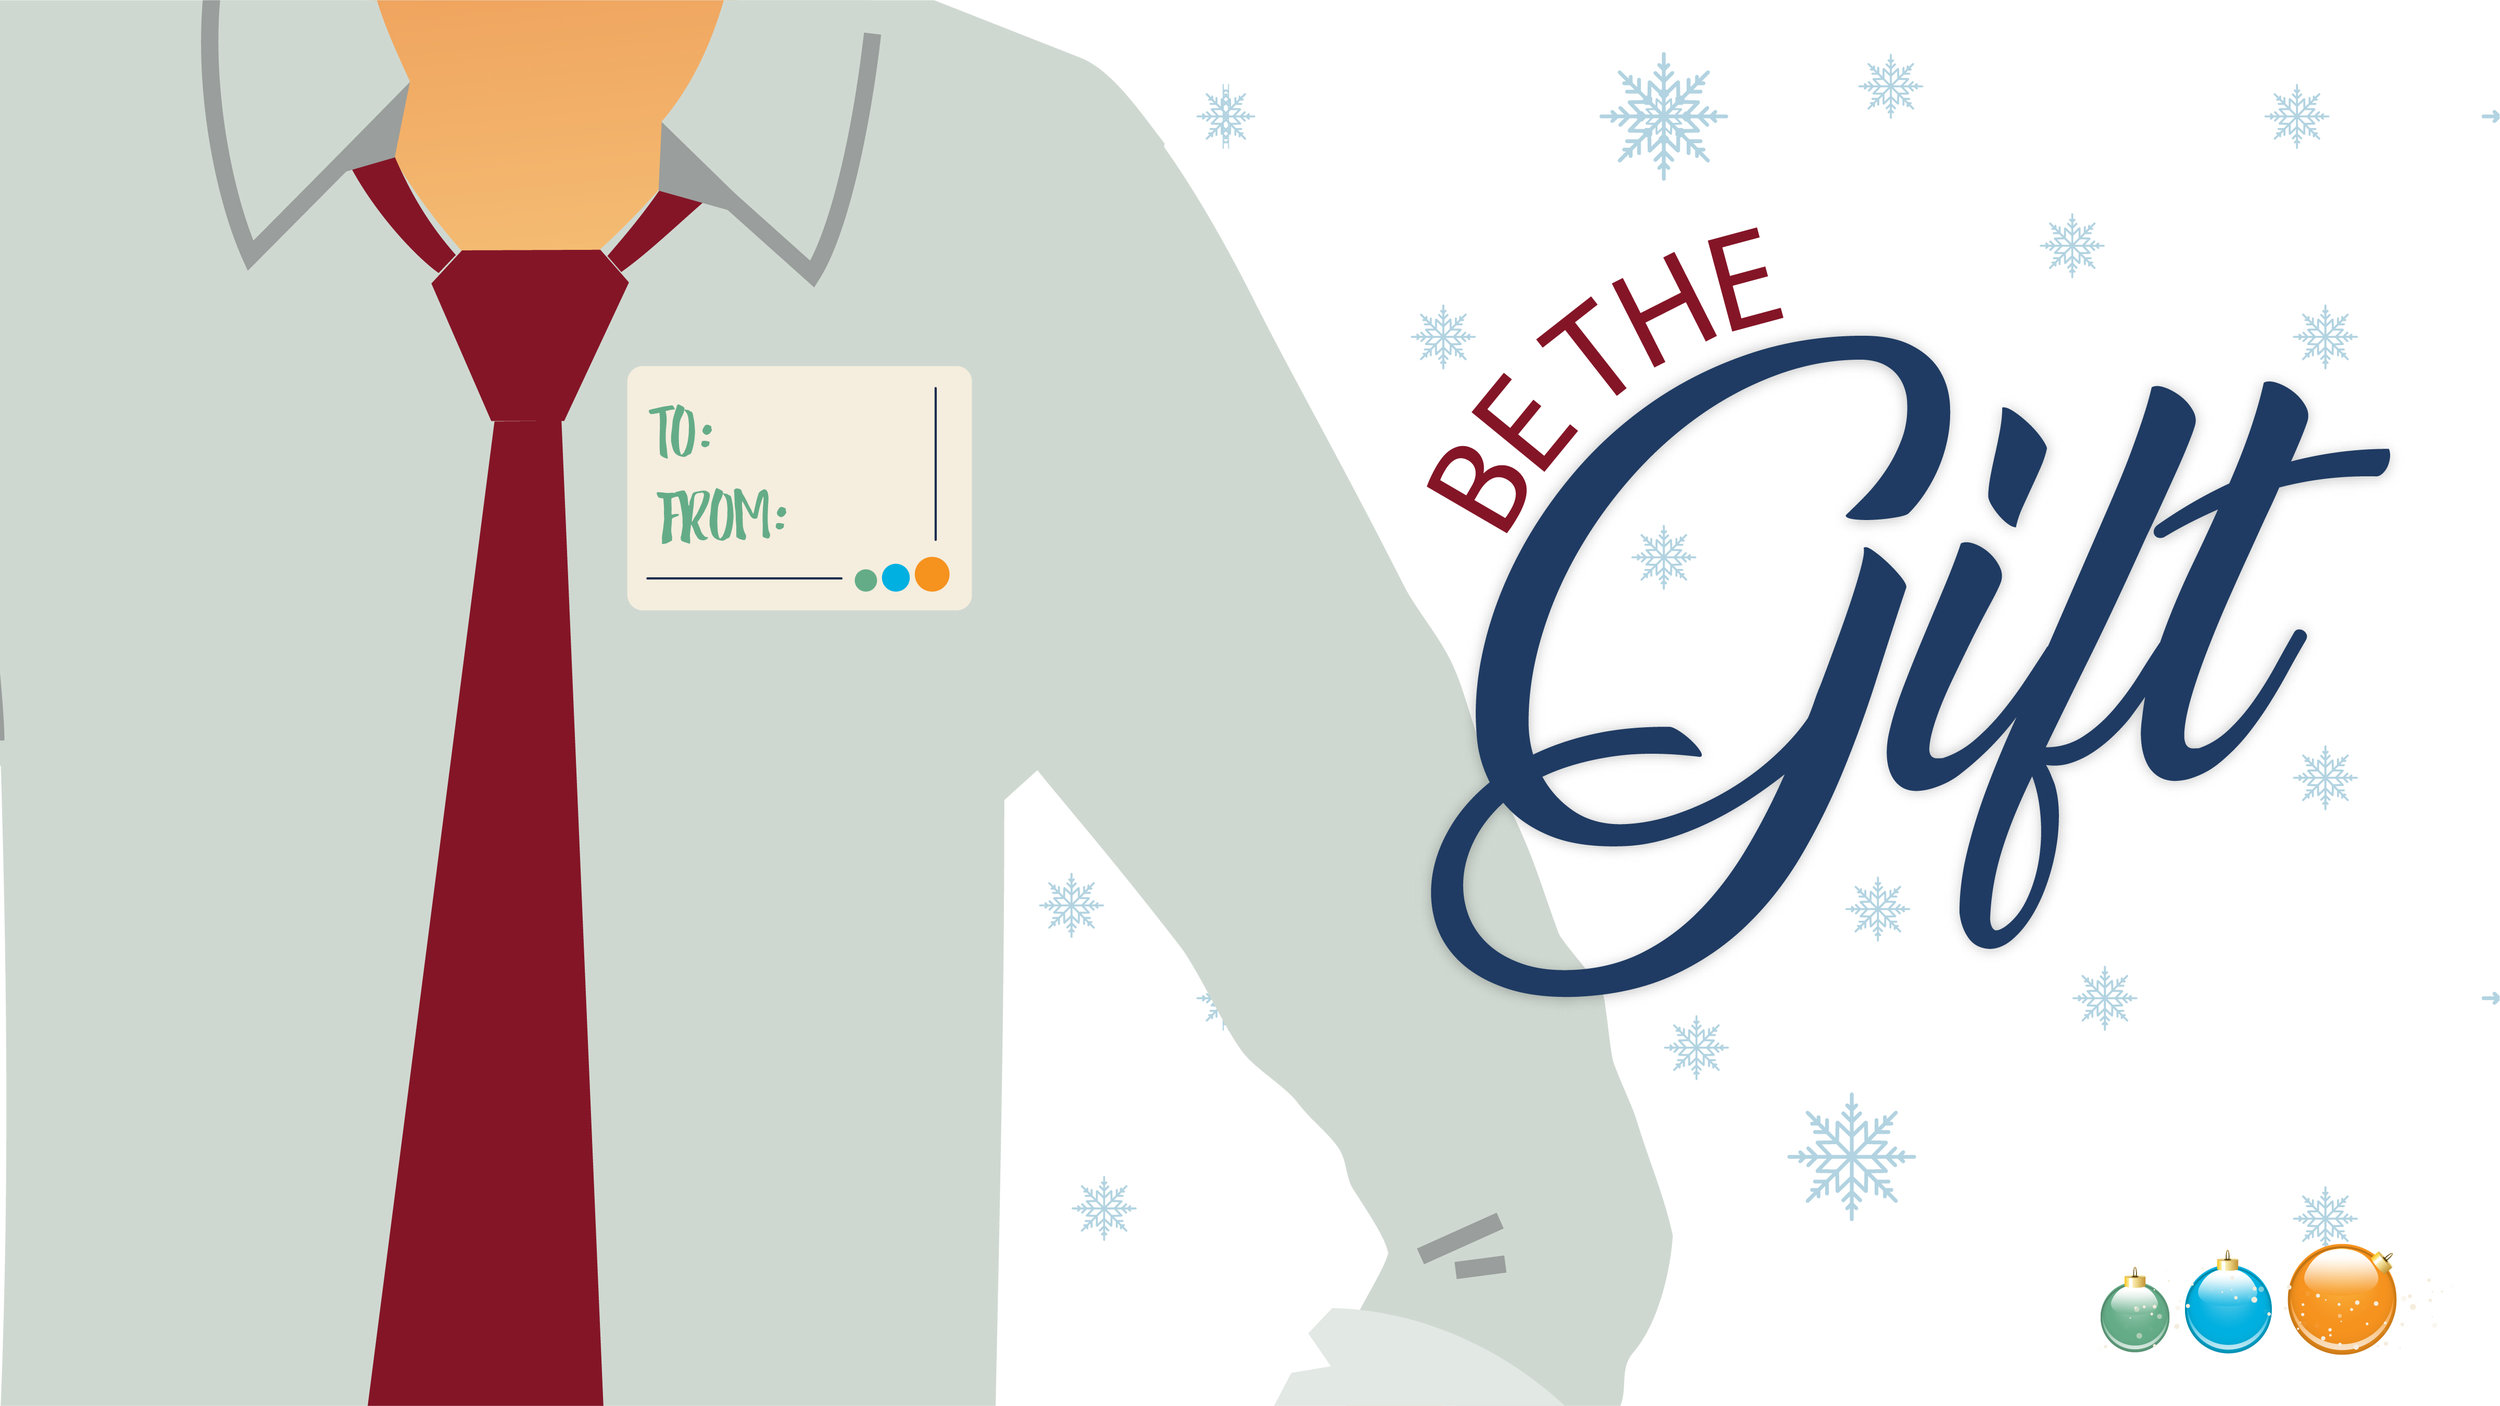 BE THE GIFT - Be the Gift is a Christmas series that looks at how we can be the gift to those around us by showing the love of Jesus in our lives, through our actions and in our Faith.